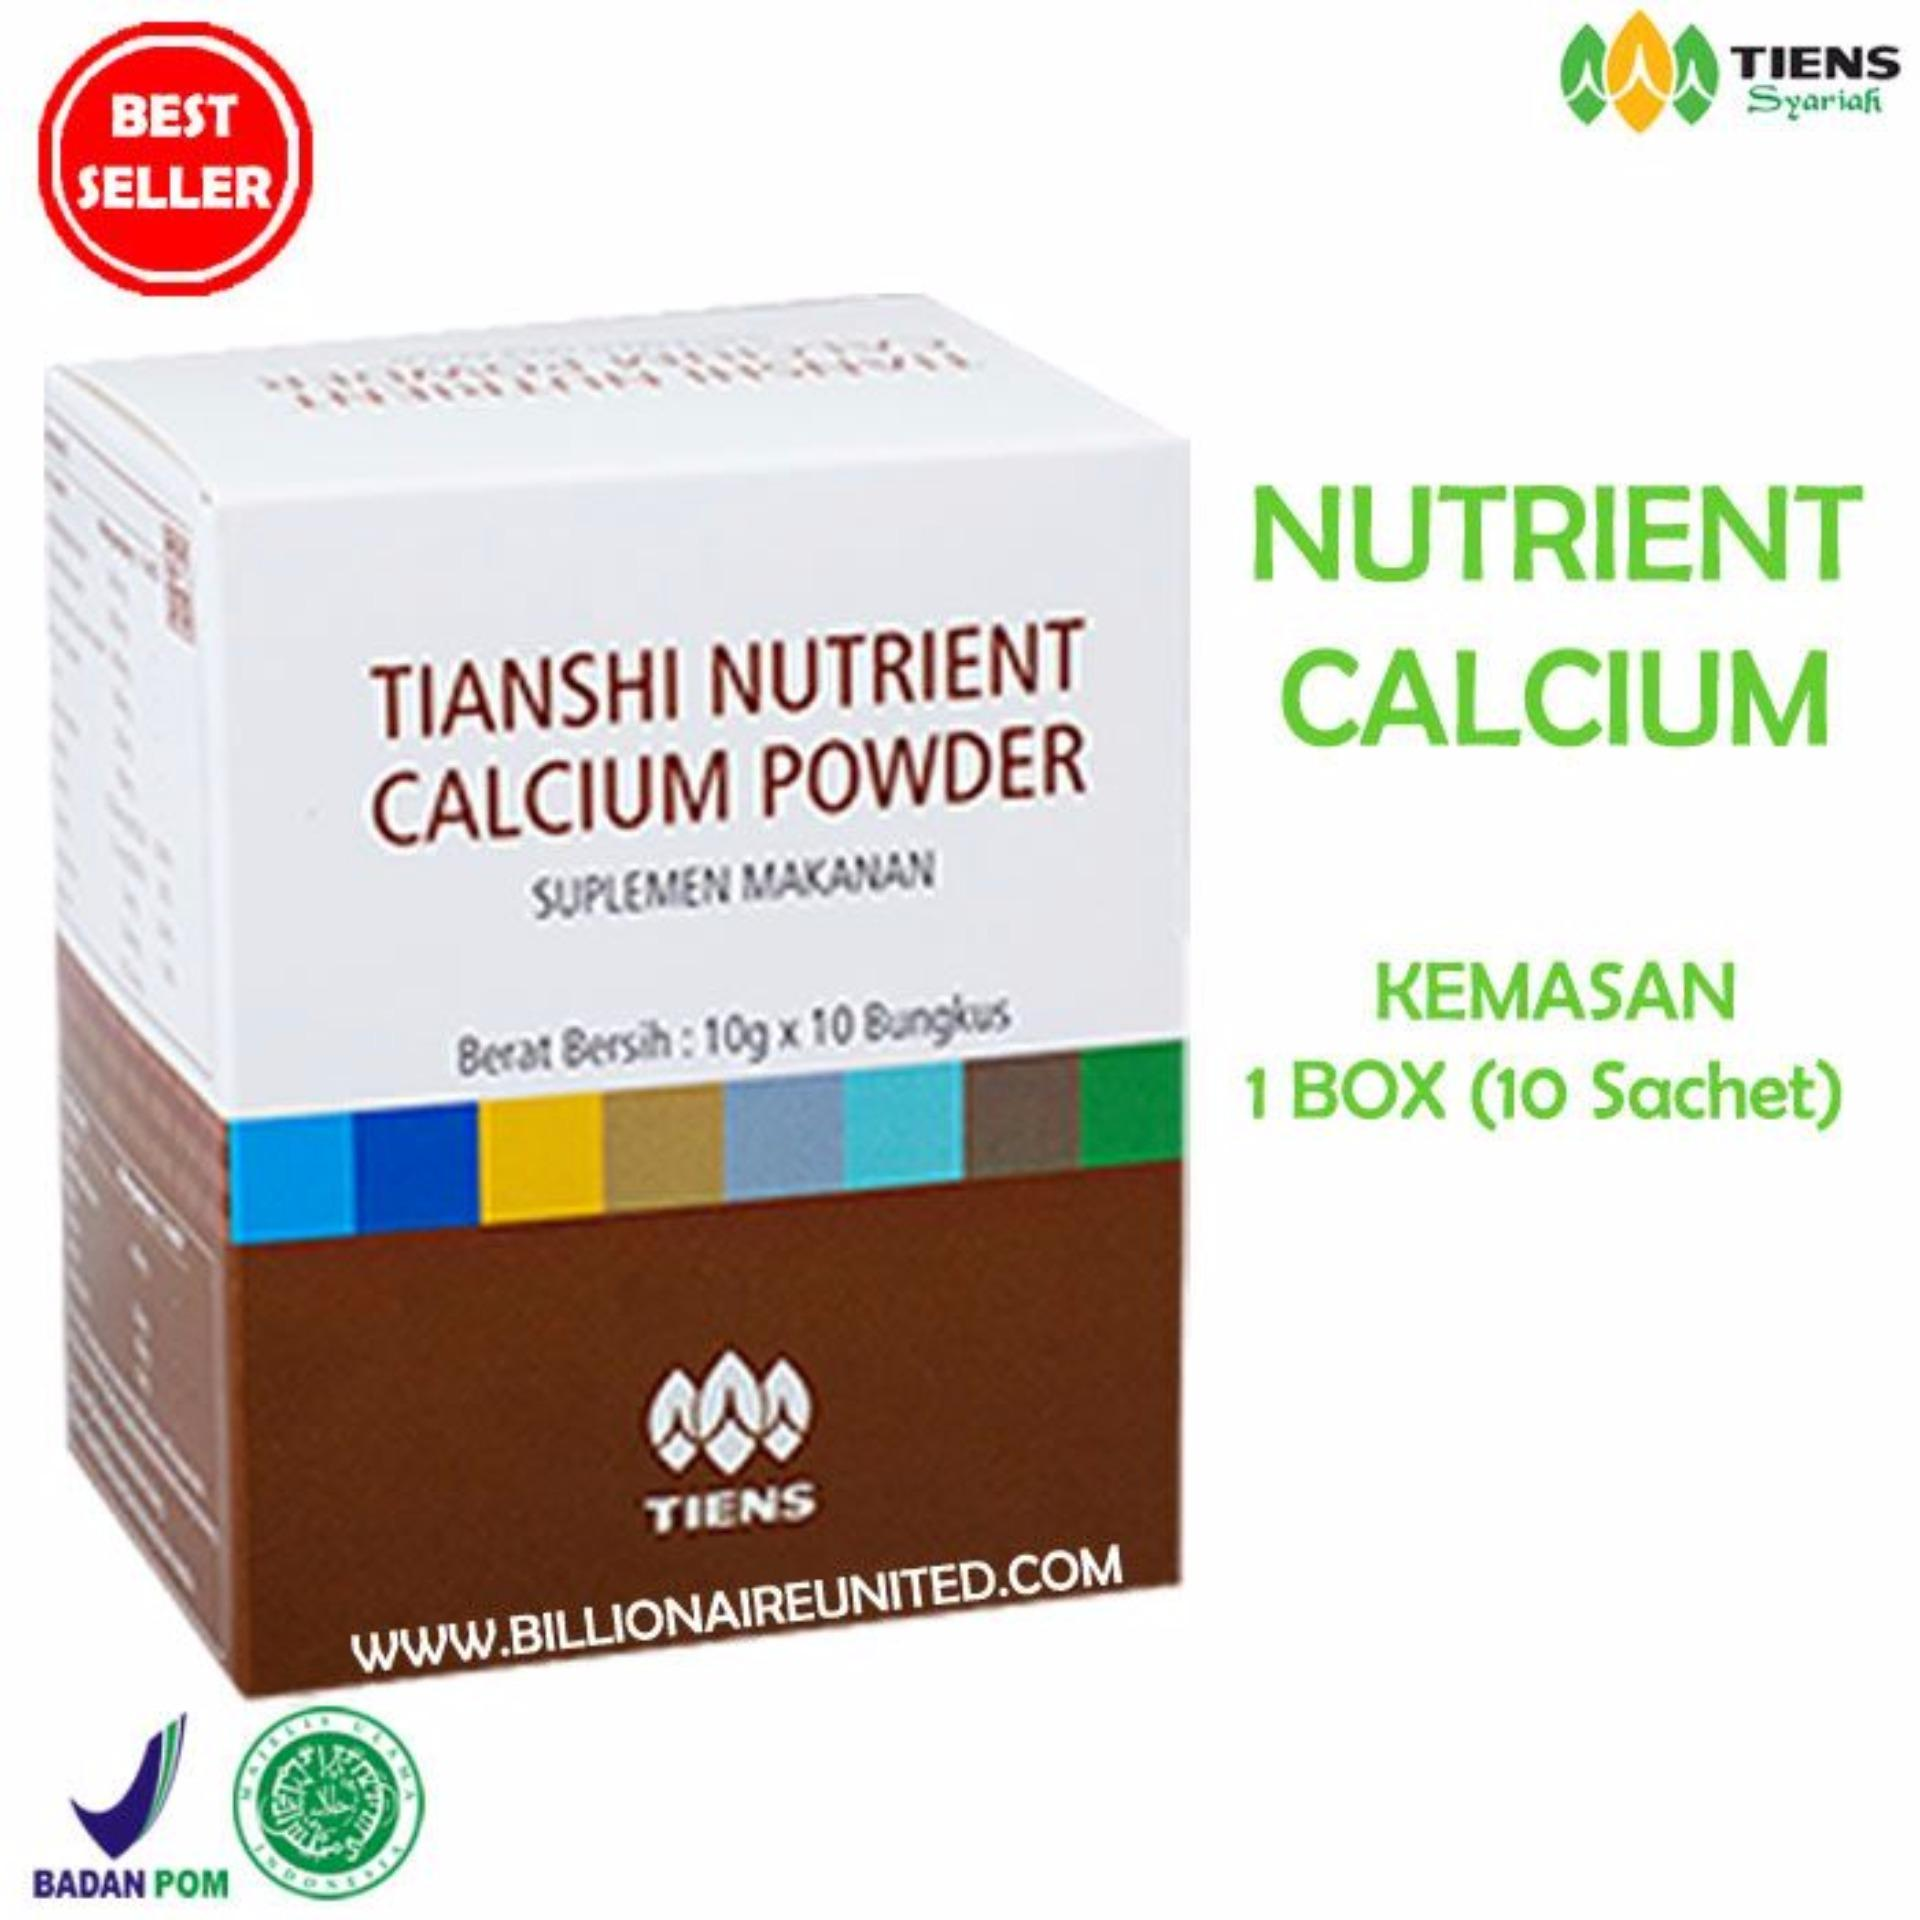 Ulasan Promo Best Seller Tiens Nhcp Nutrient Hight Calcium Powder Kalsium Terbaik Dunia